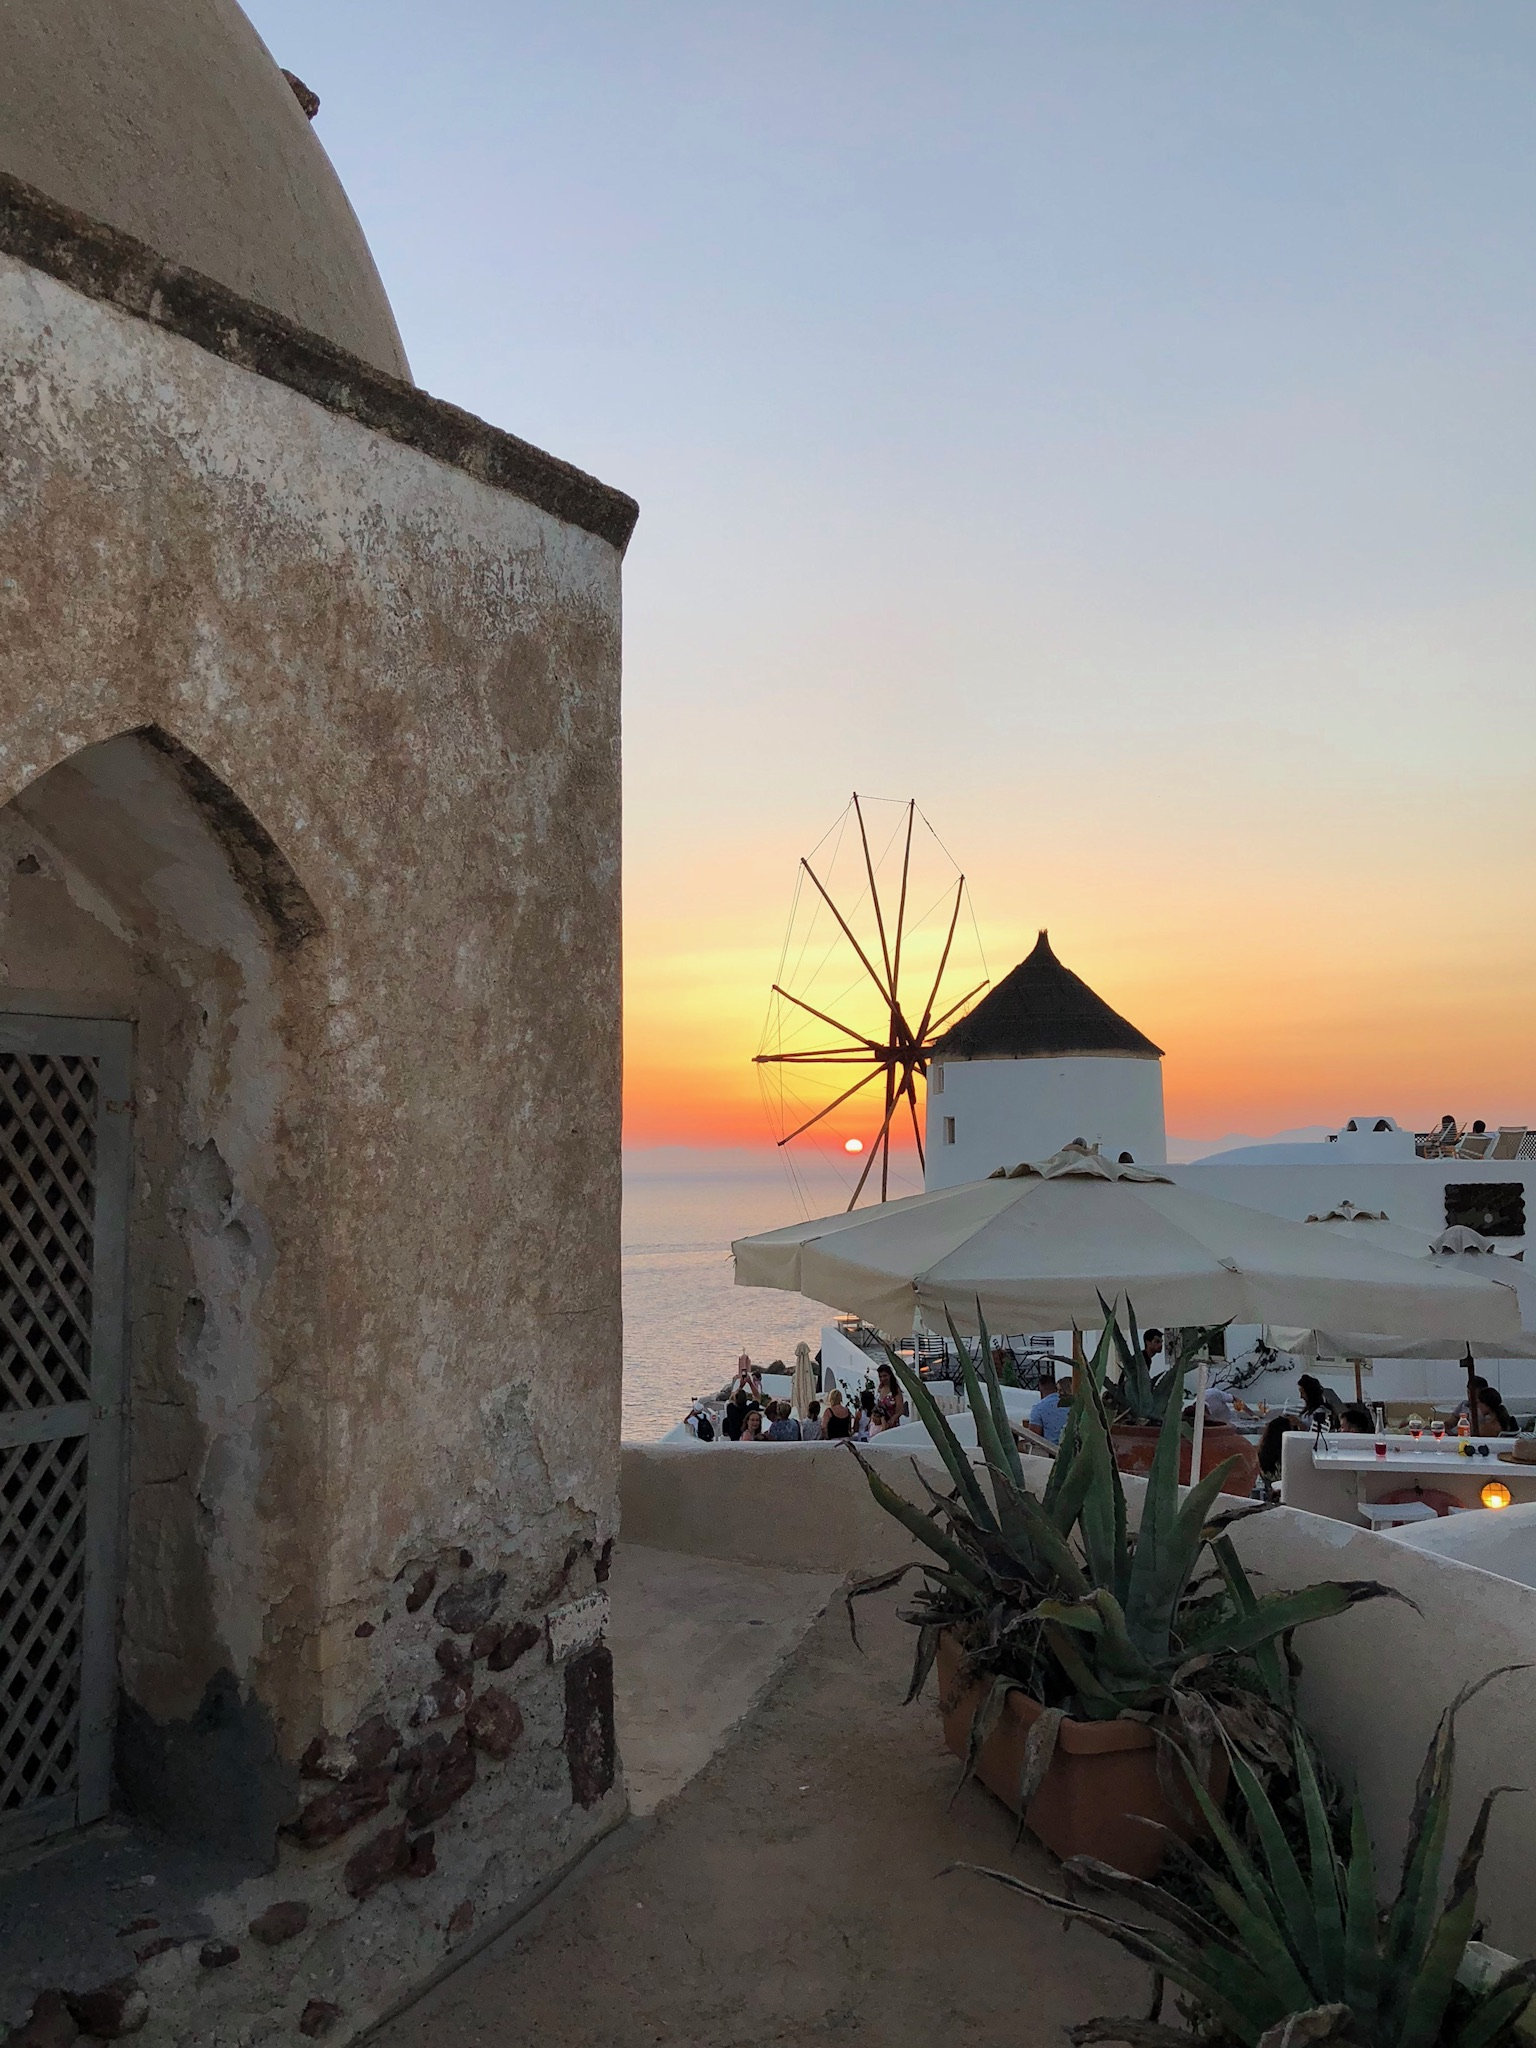 Oia is known for its sunsets